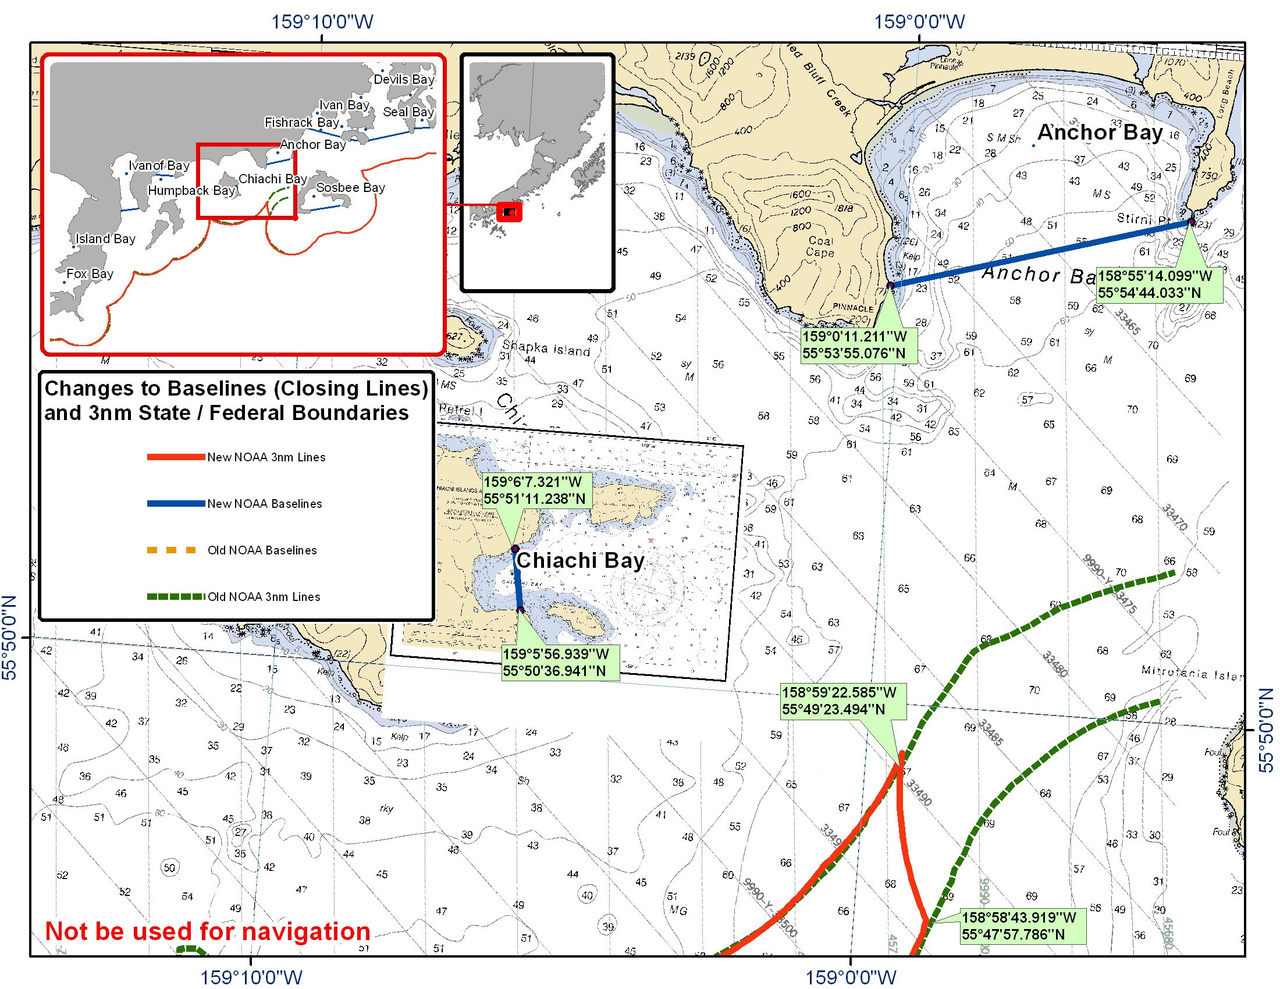 Chart for Anchor Bay and Chiachi Bay